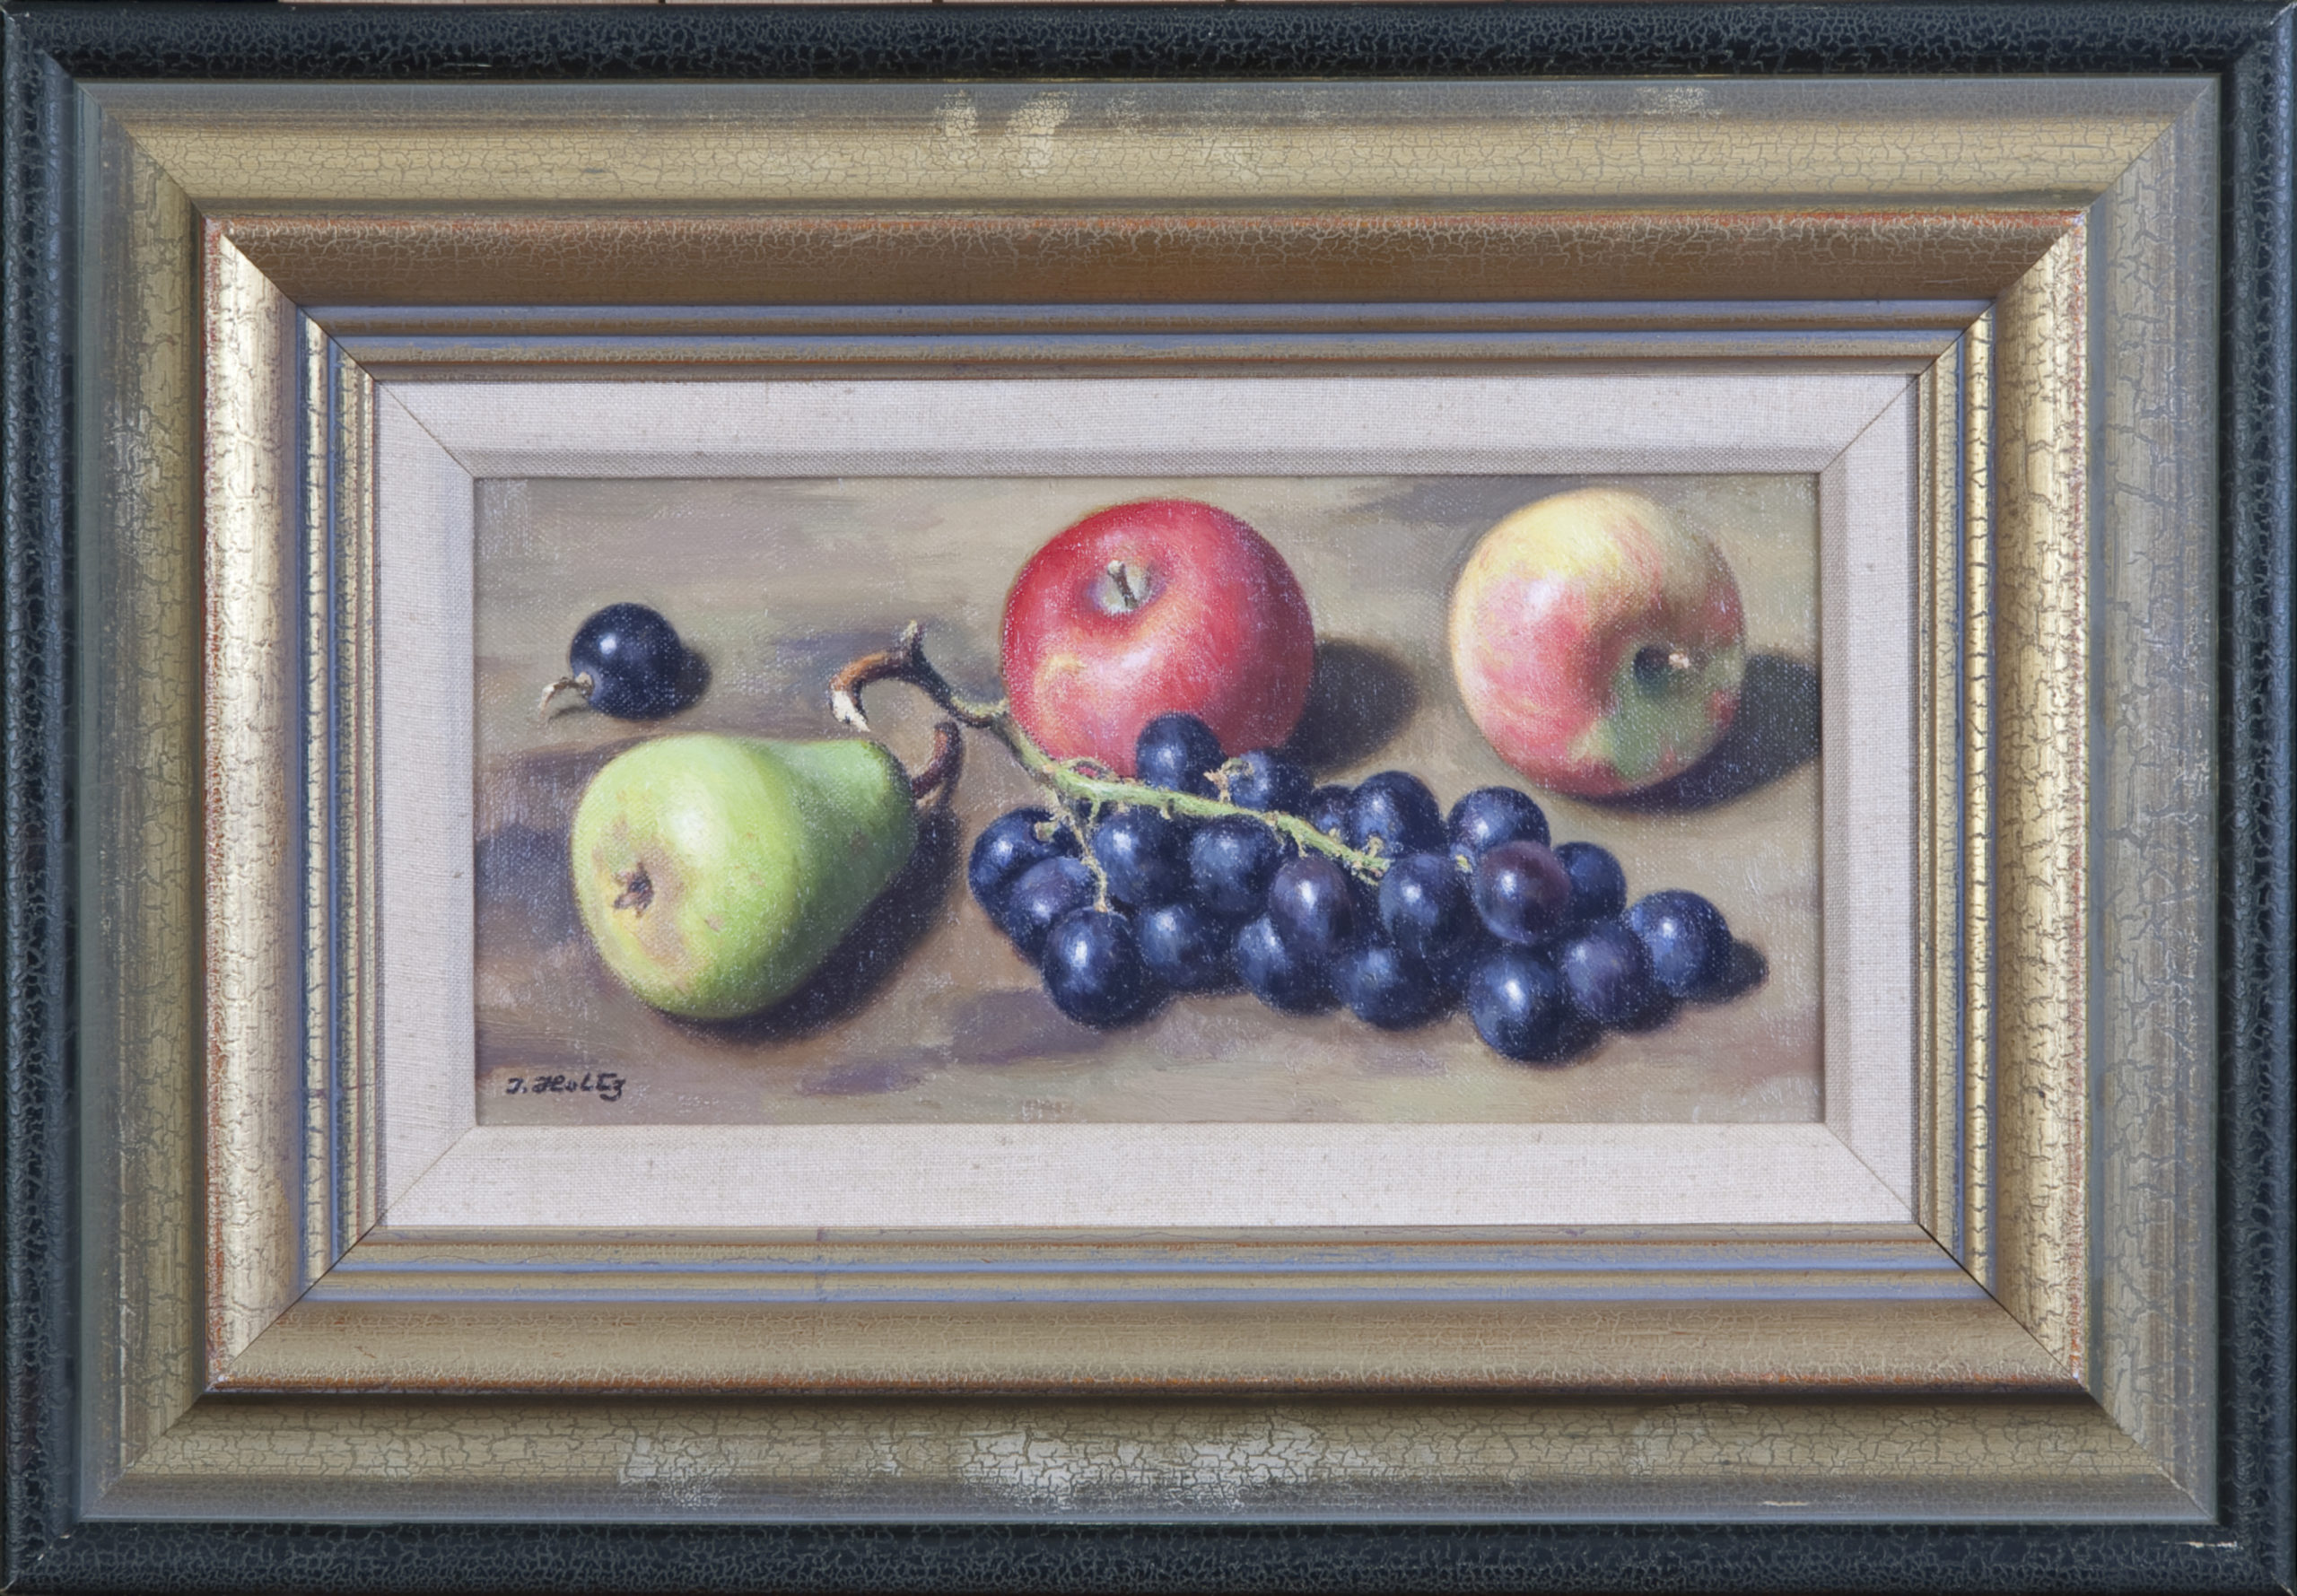 150 Pear Apples and Grapes 1964 - Oil on Canvas - 12 x 6 - Frame: 19.5 x 13.5 x 2